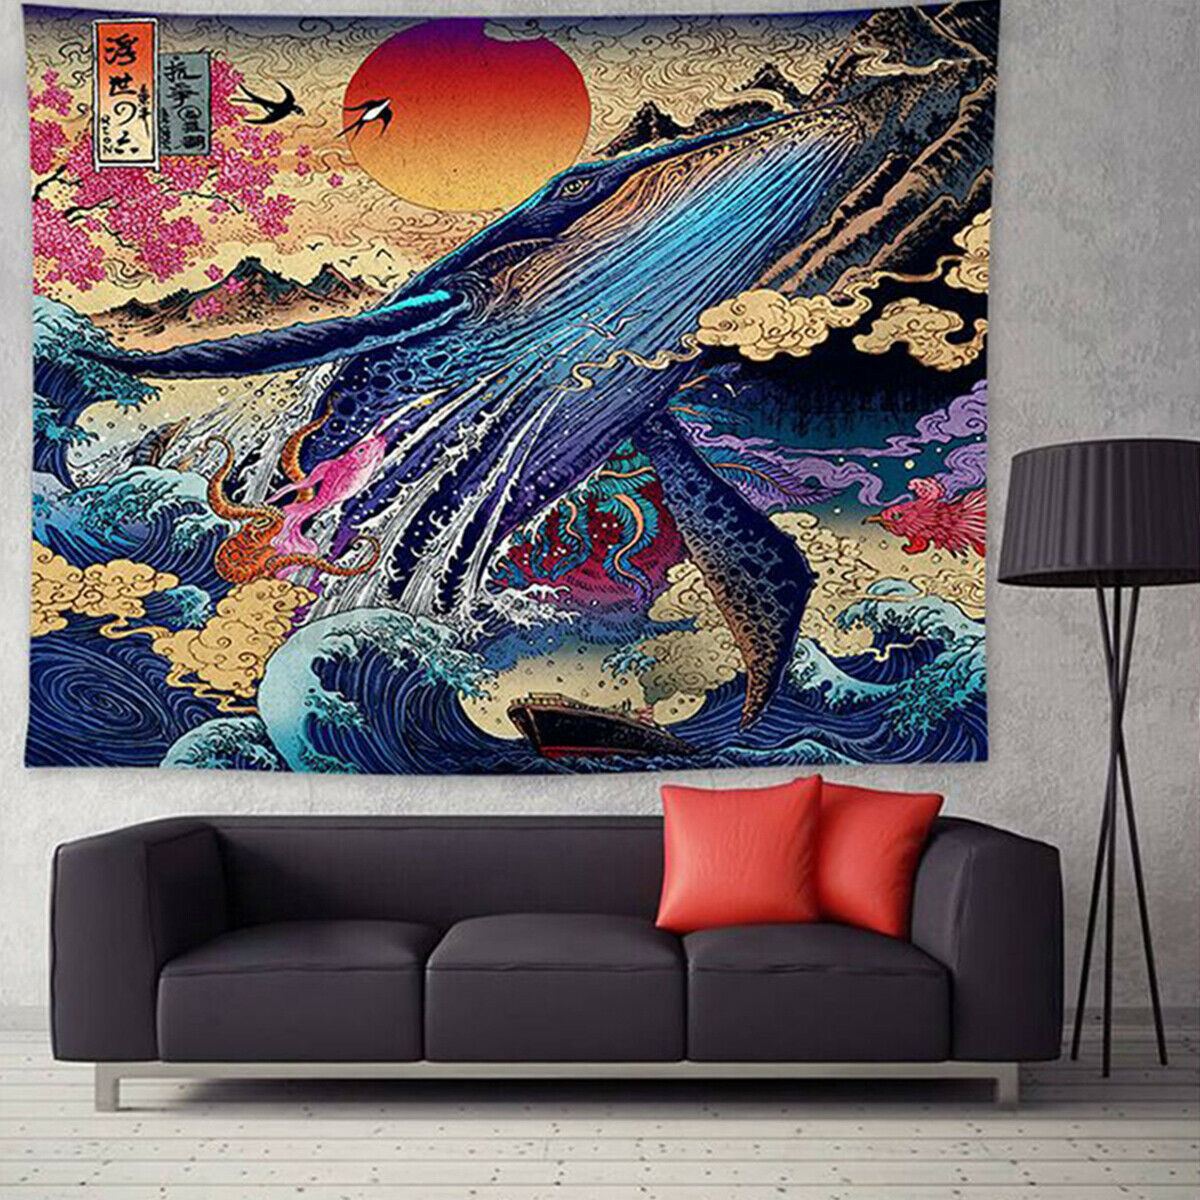 210659 Tapestry Tapestries Decor Wall hanging Background wall cloth printed tapestry home decoration rag background wall cloth 200 150CM